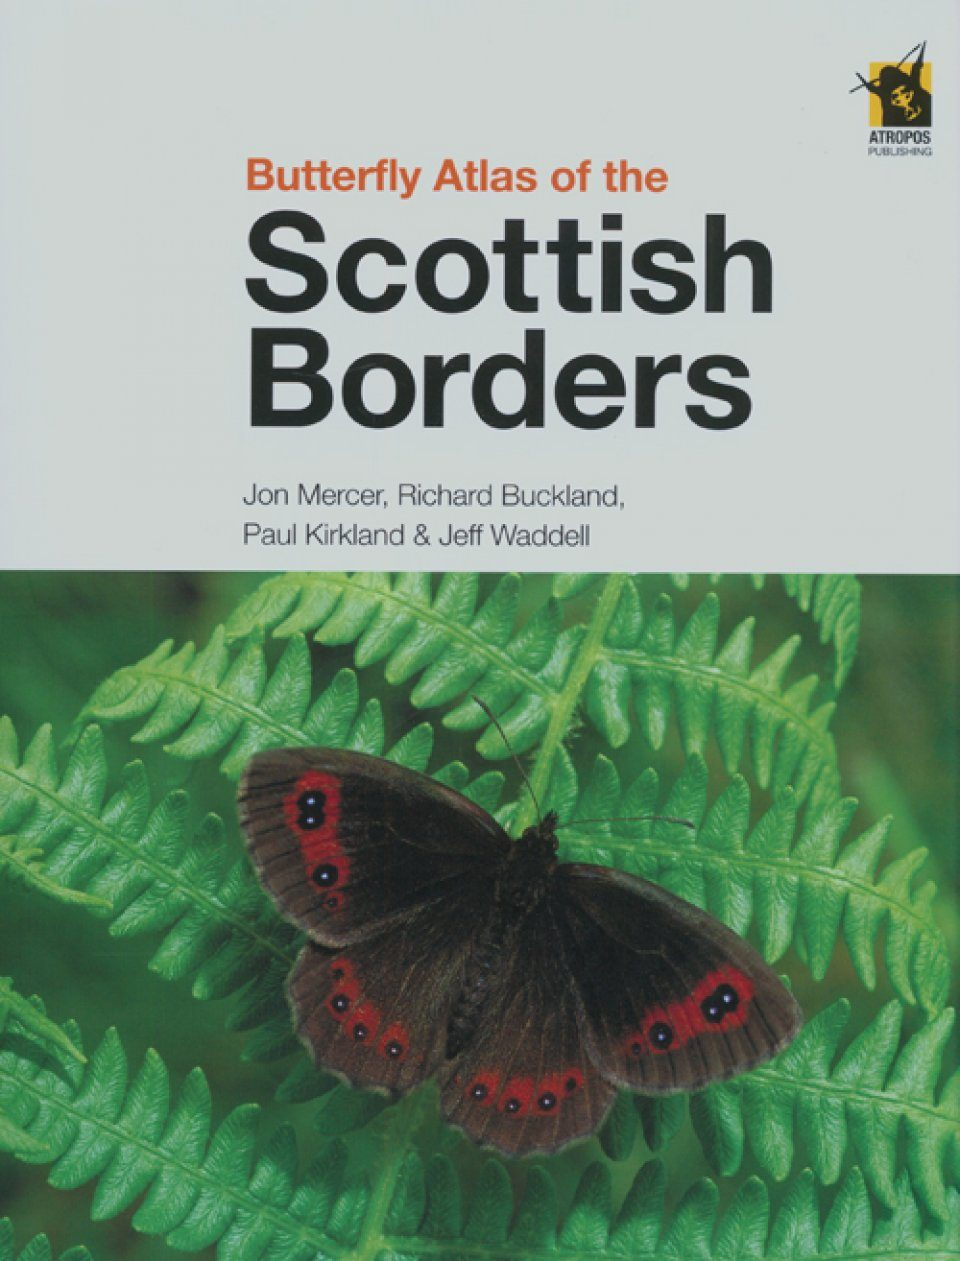 Butterfly Atlas of the Scottish Borders